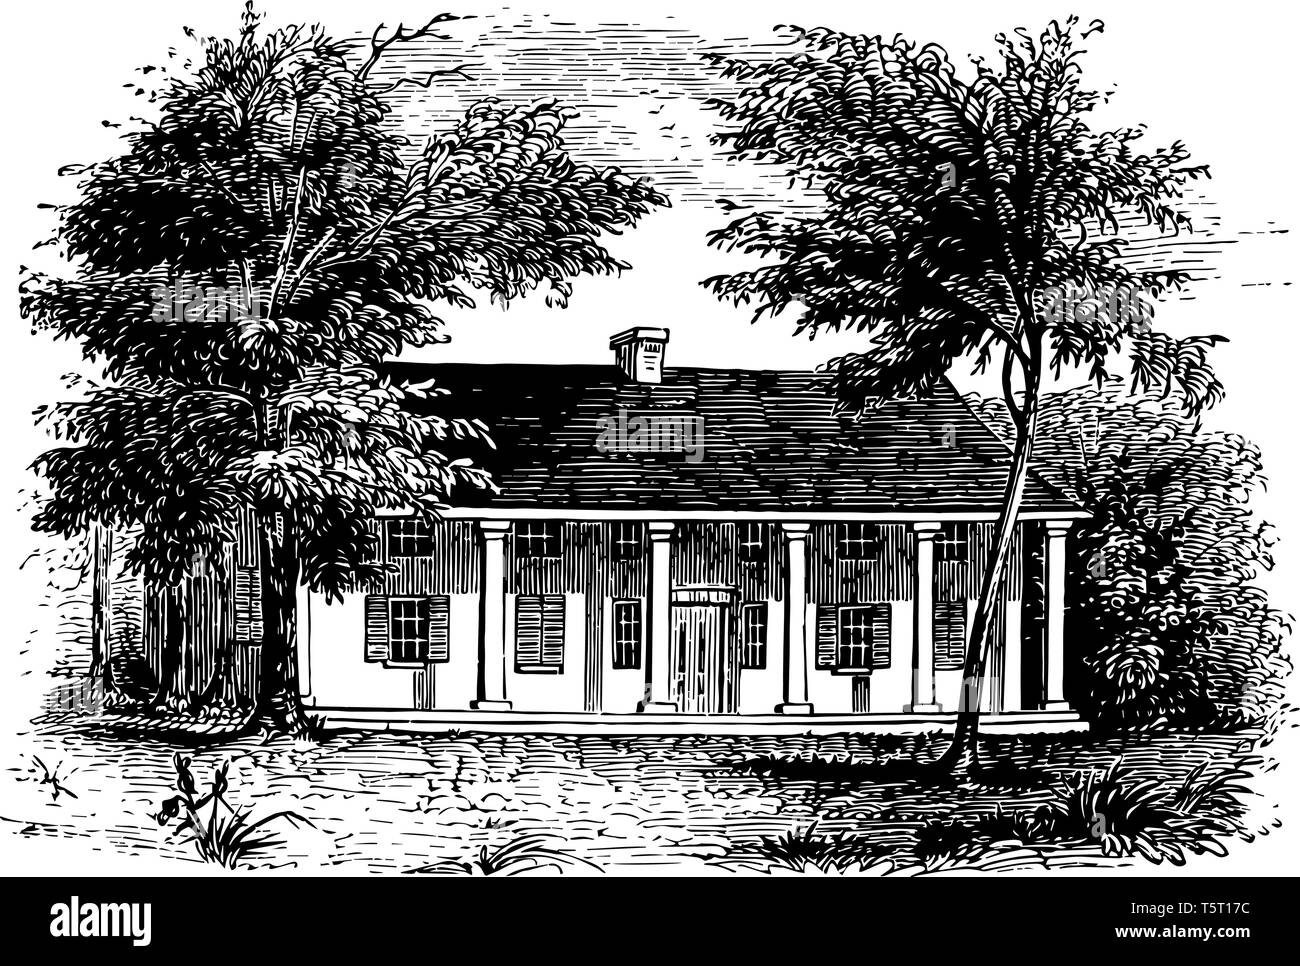 General Schuylers house built in 1777 , occupied by the British army during American Revolutionary war  vintage line drawing. - Stock Image